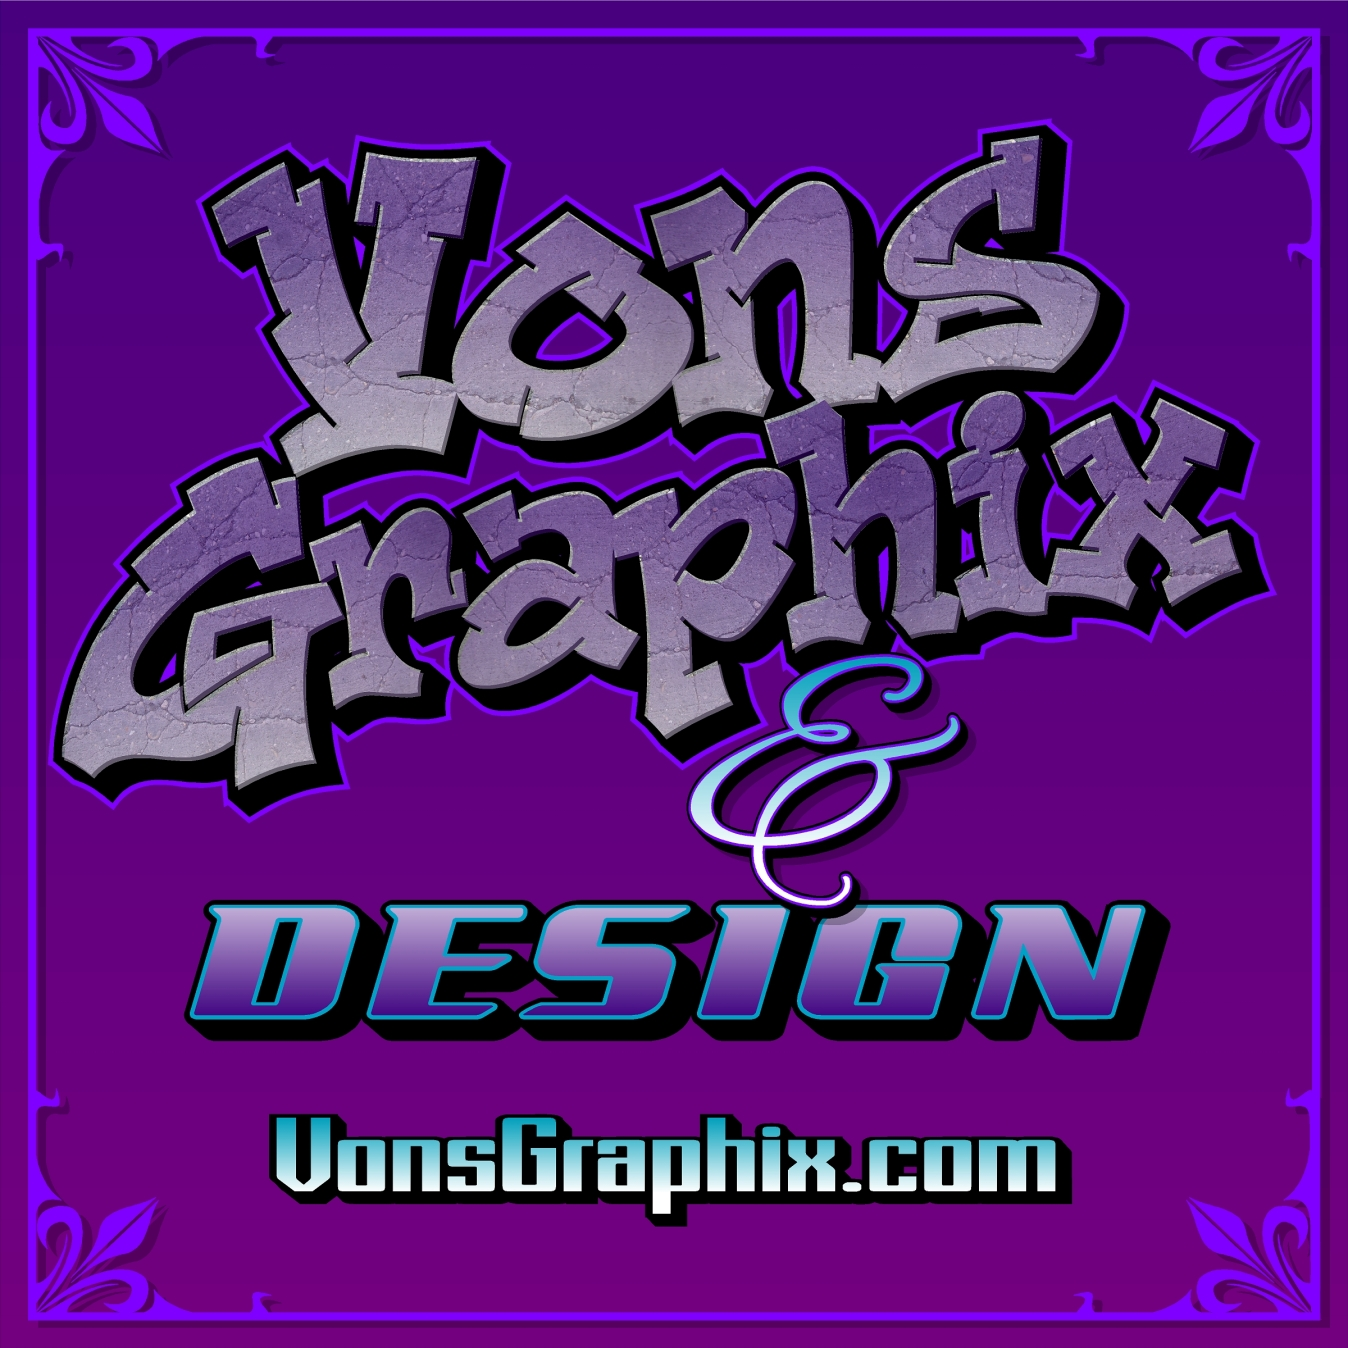 VONS_GRAPHIX_GRAFITTI_LOGO_SQUARE